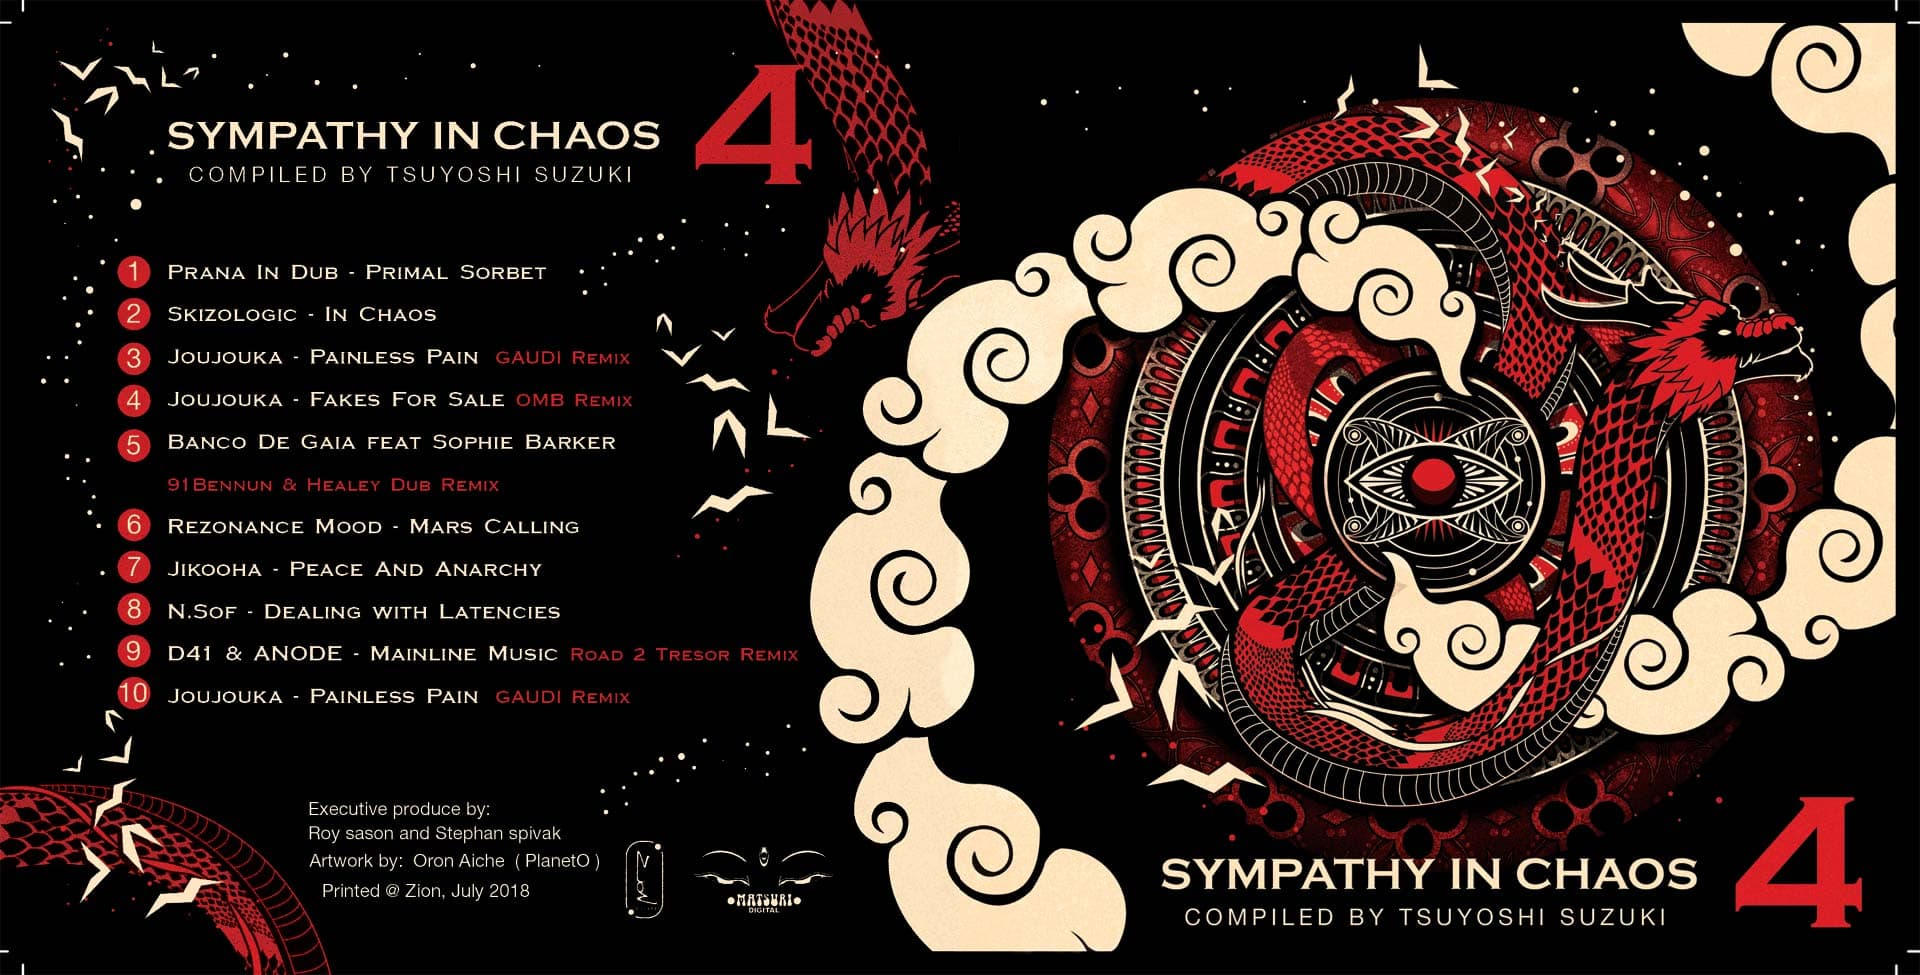 Sympathy in Chaos 4